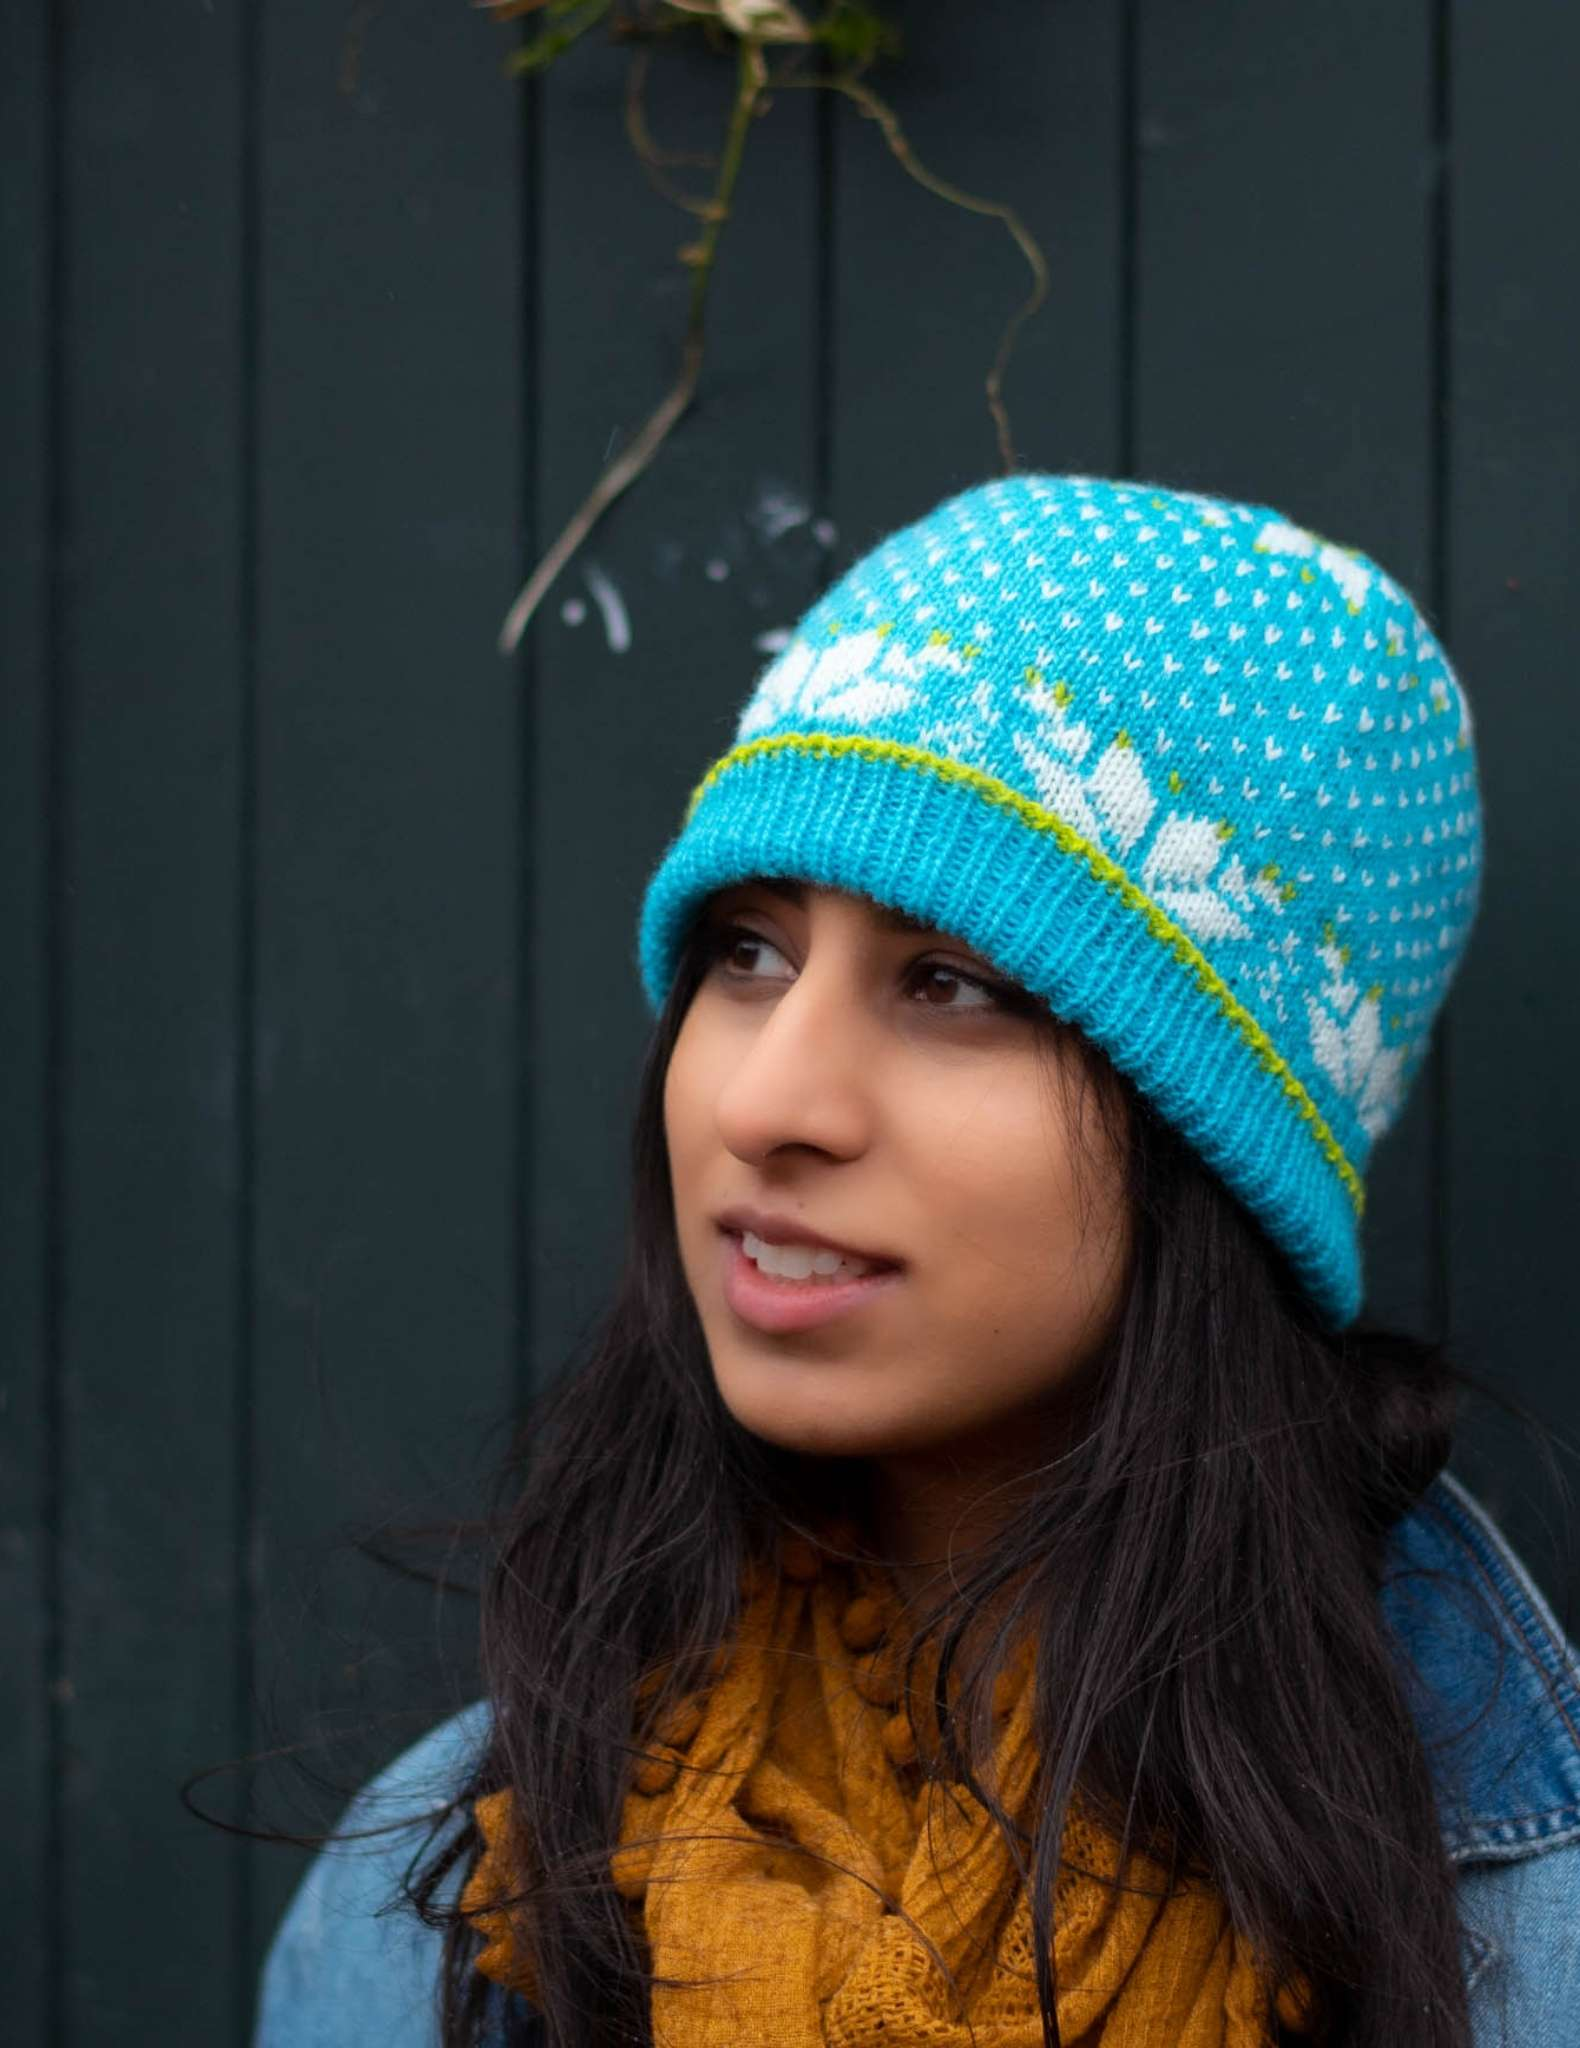 a model with dark hair wears a bright blue colourwork hat with snowflake detail. They are wearing a yellow scarf and looking slightly to the side.